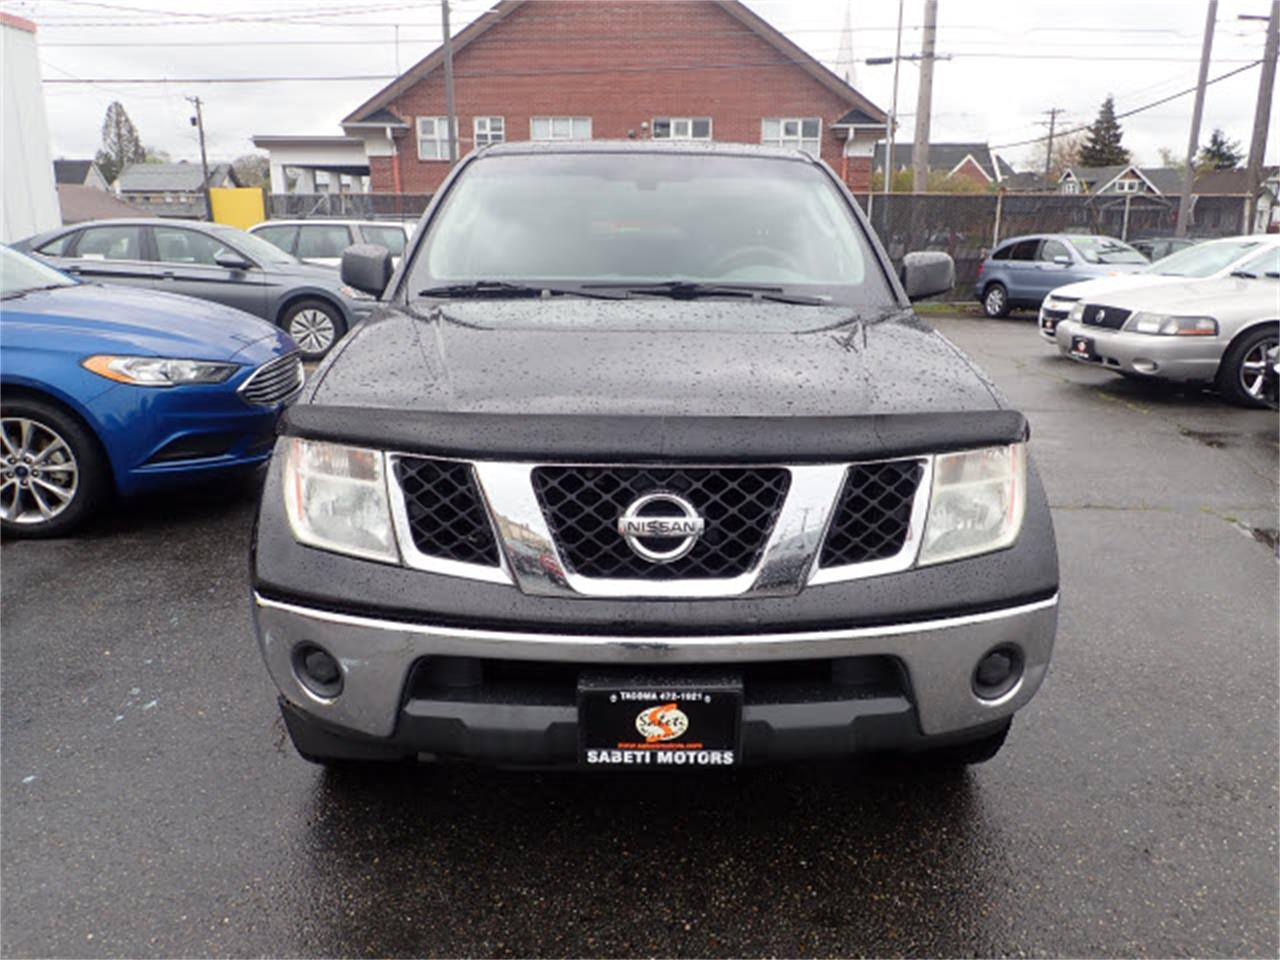 Large Picture of '05 Nissan Frontier located in Tacoma Washington - $9,990.00 Offered by Sabeti Motors - PX5J